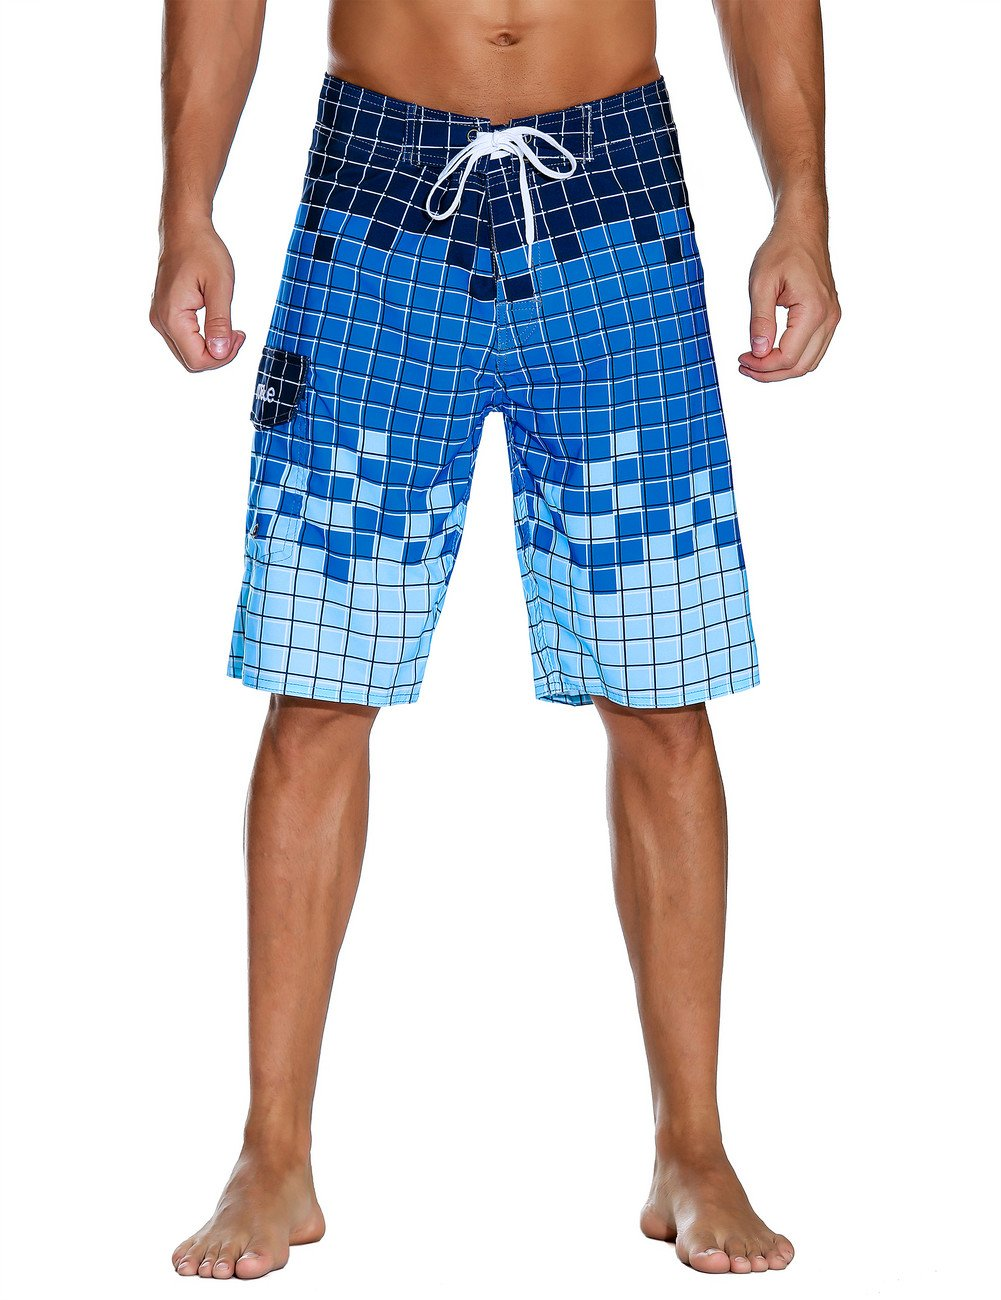 Nonwe Men's Swimwear Grid Printed Quick Dry Board Shorts with Lining Blue 40 by Nonwe